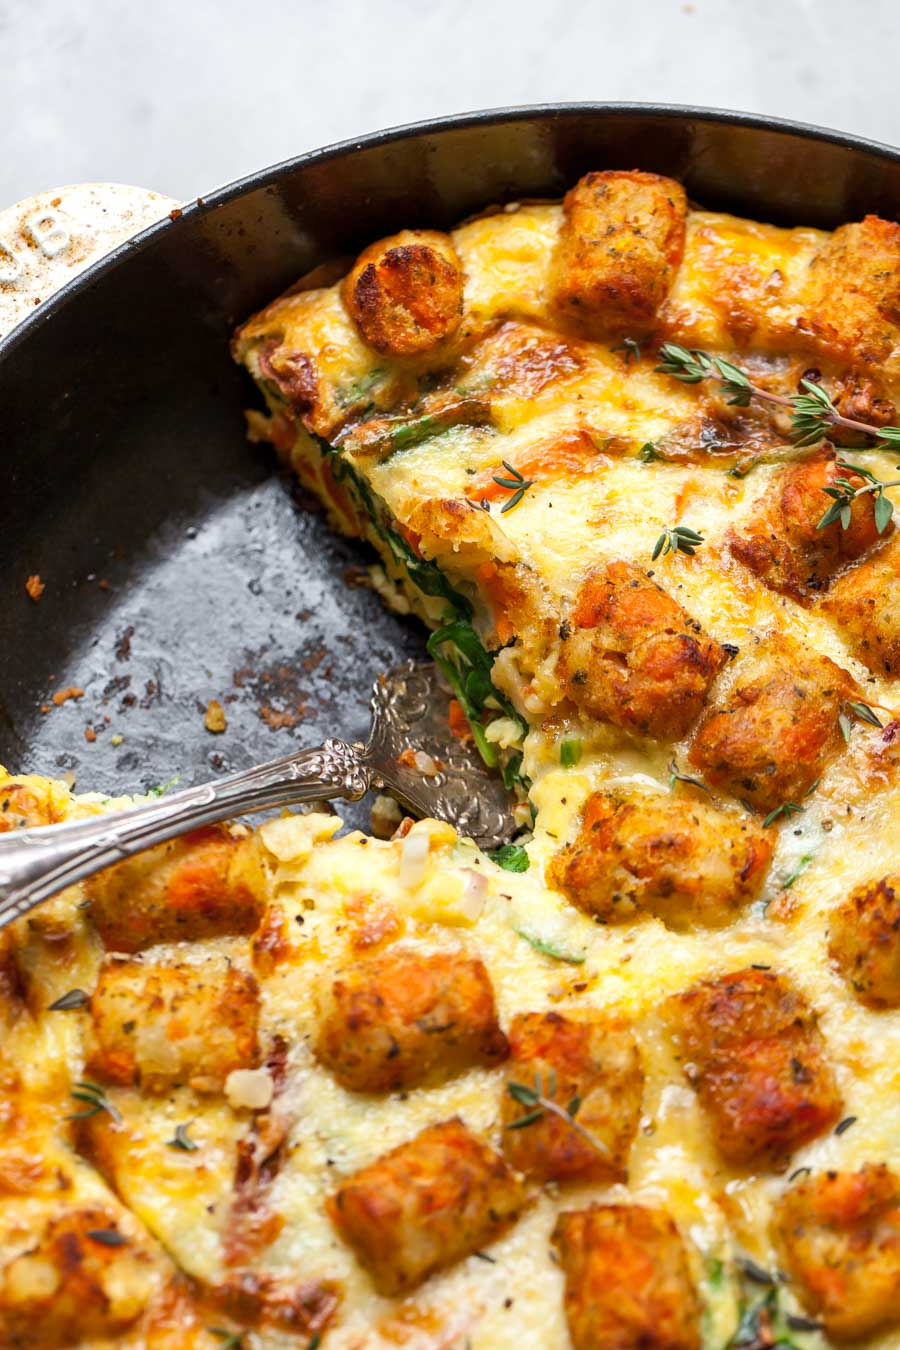 Mediterranean Veggie Frittata with Cheese and Tater Tots